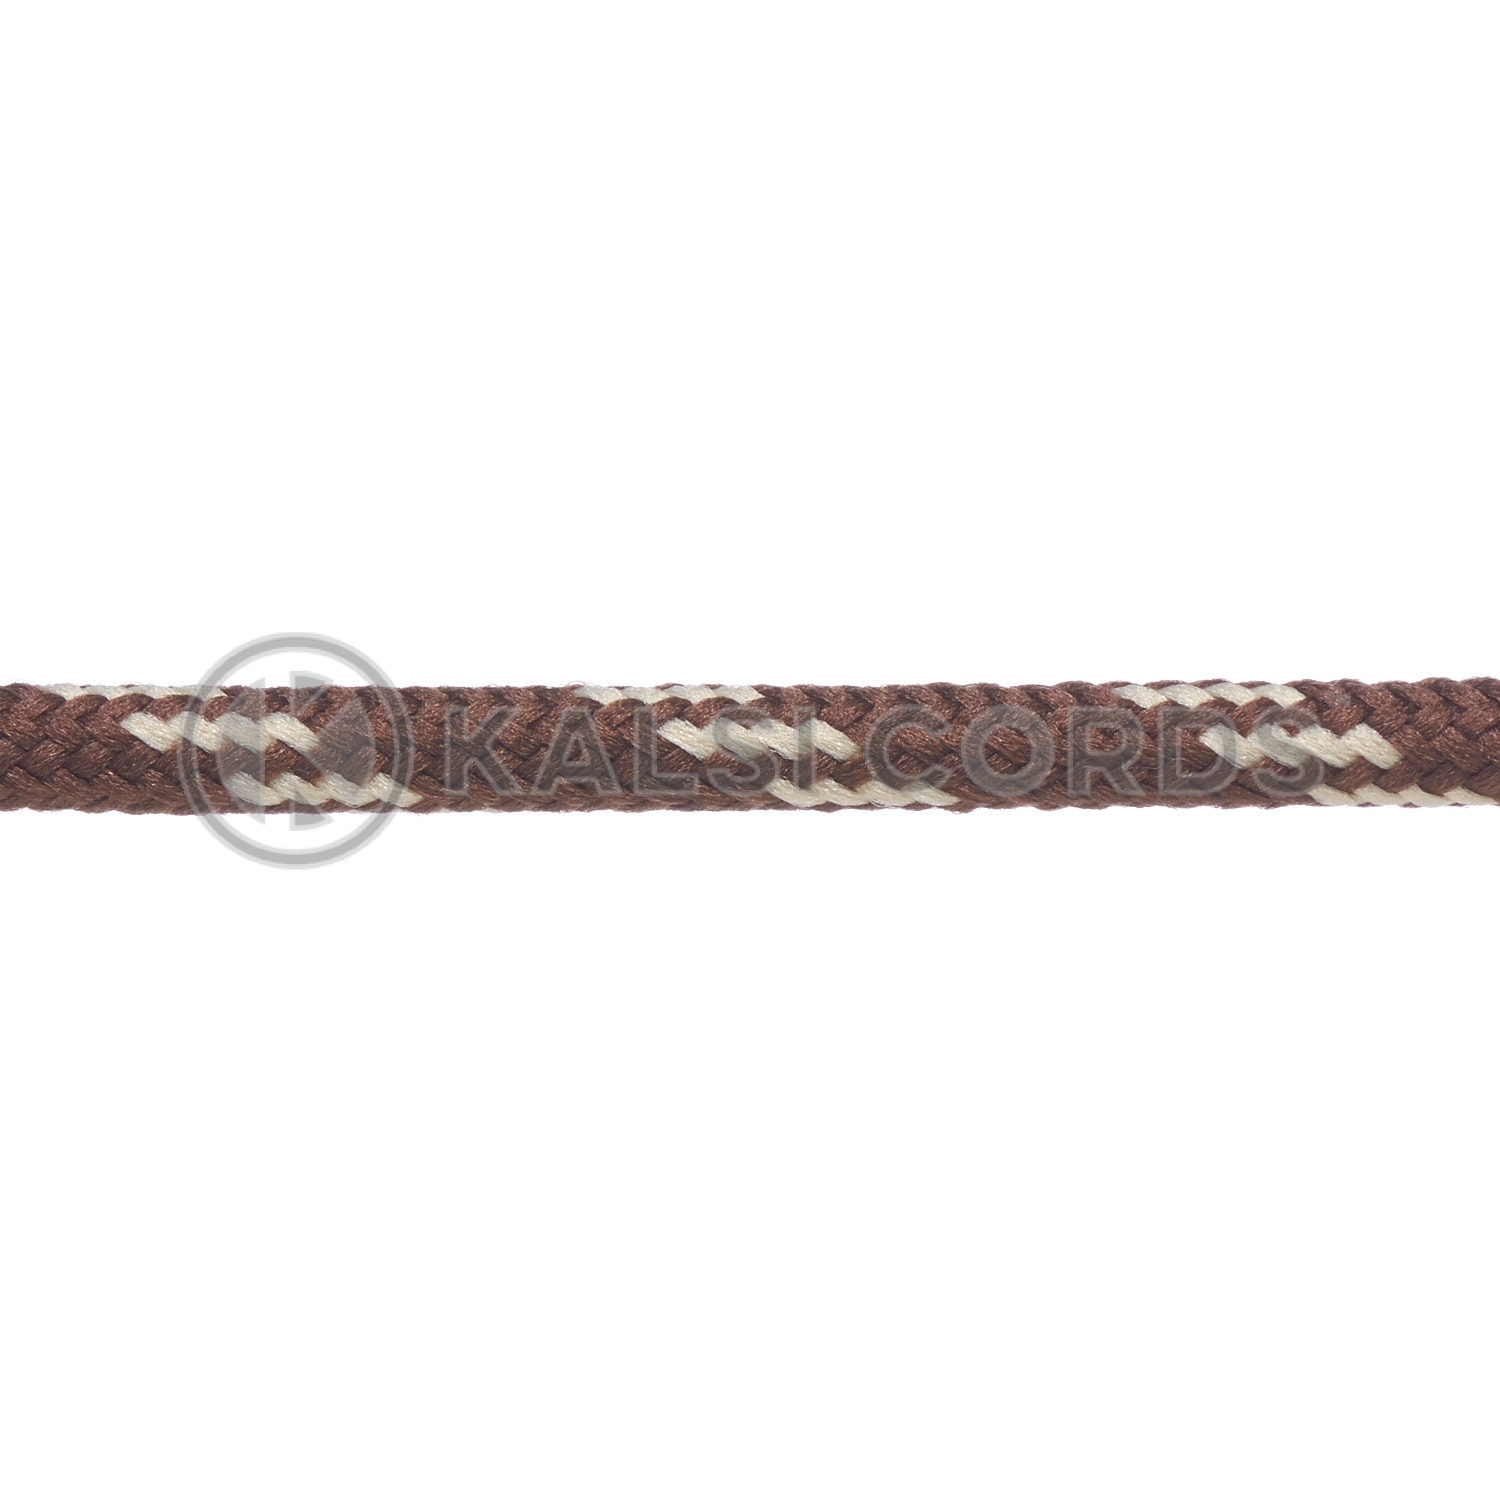 T621 5mm Round Cord Shoe Laces York Brown Cream 4 Fleck Kids Trainers Adults Hiking Walking Boots Kalsi Cords